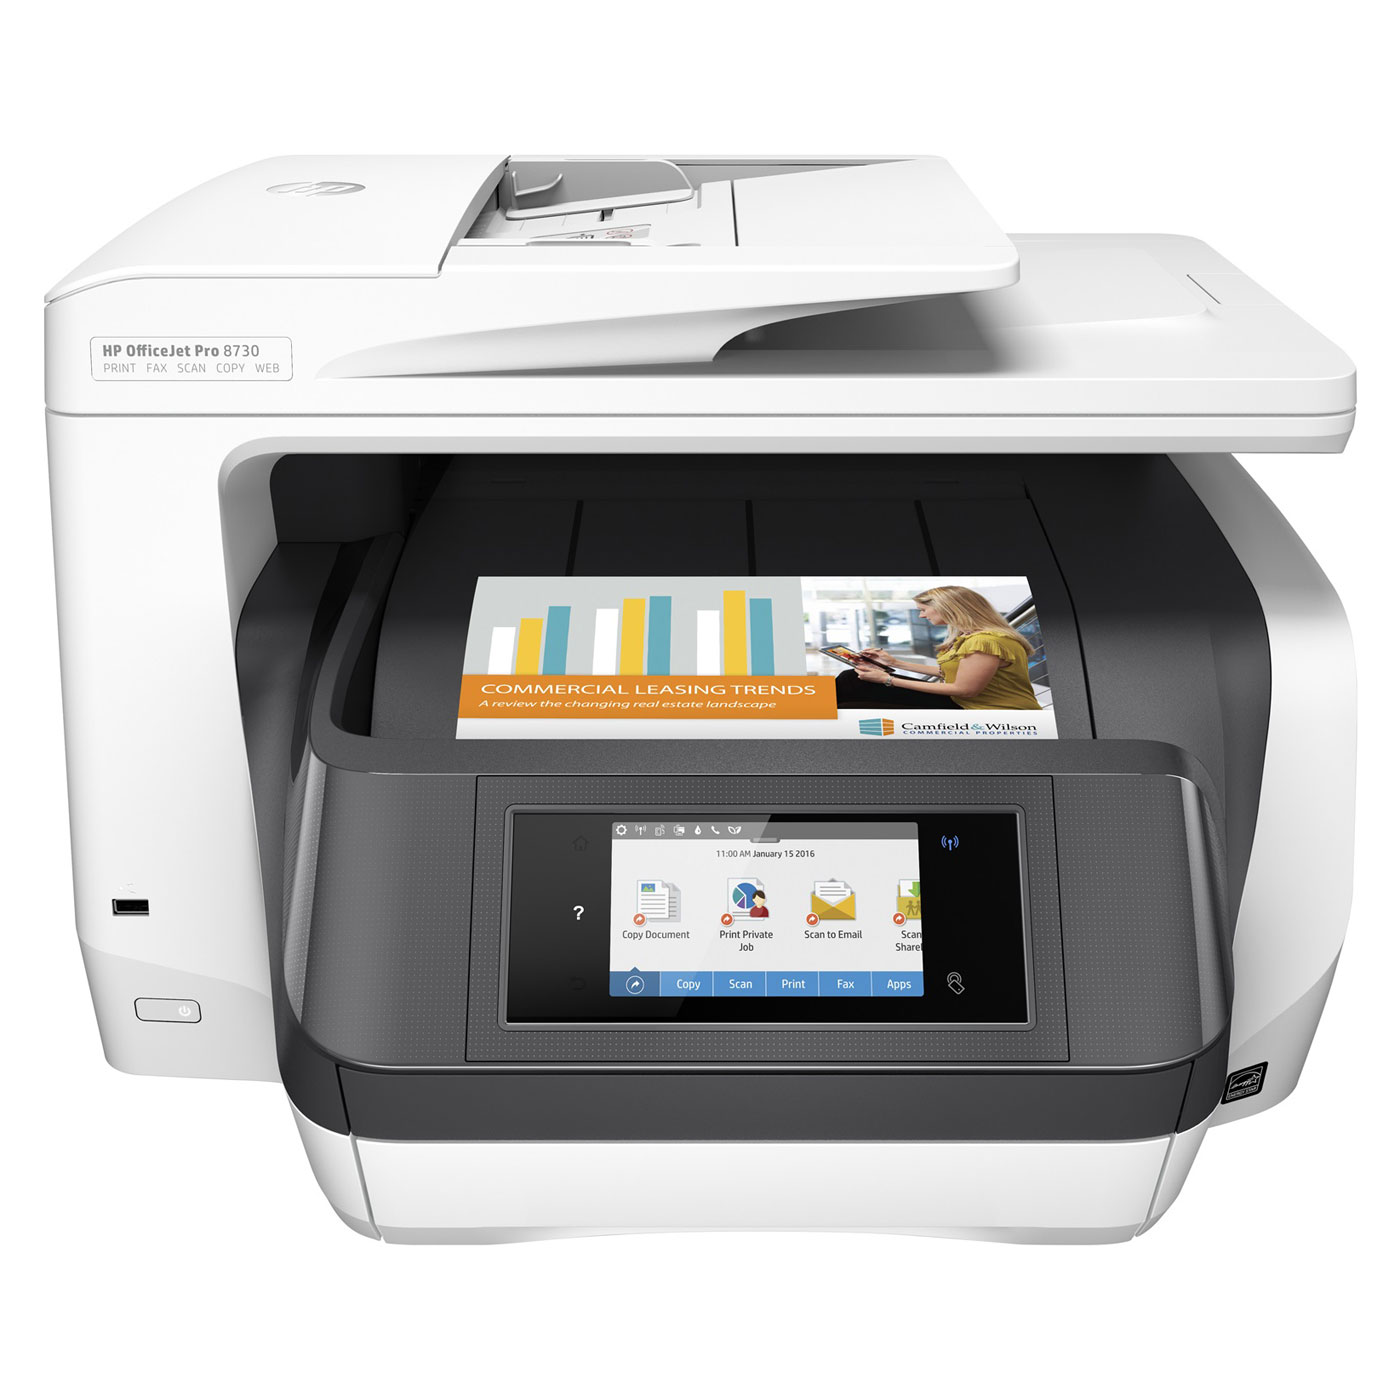 hp officejet pro 8730 imprimante multifonction hp sur. Black Bedroom Furniture Sets. Home Design Ideas